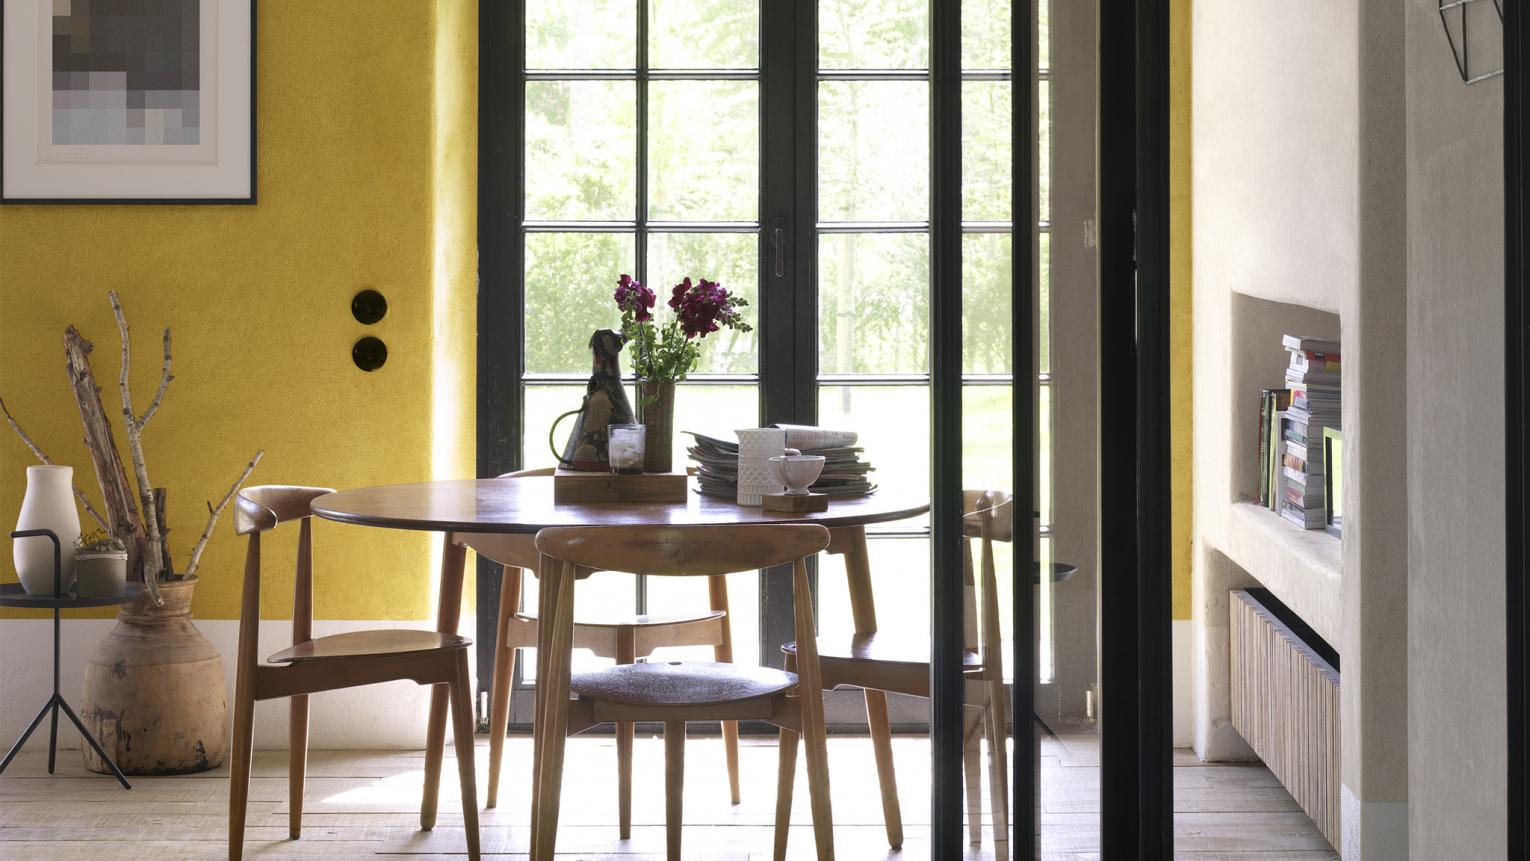 Multi-functional dining room? Choose a cohesive colour scheme that balances practicality with sophistication.